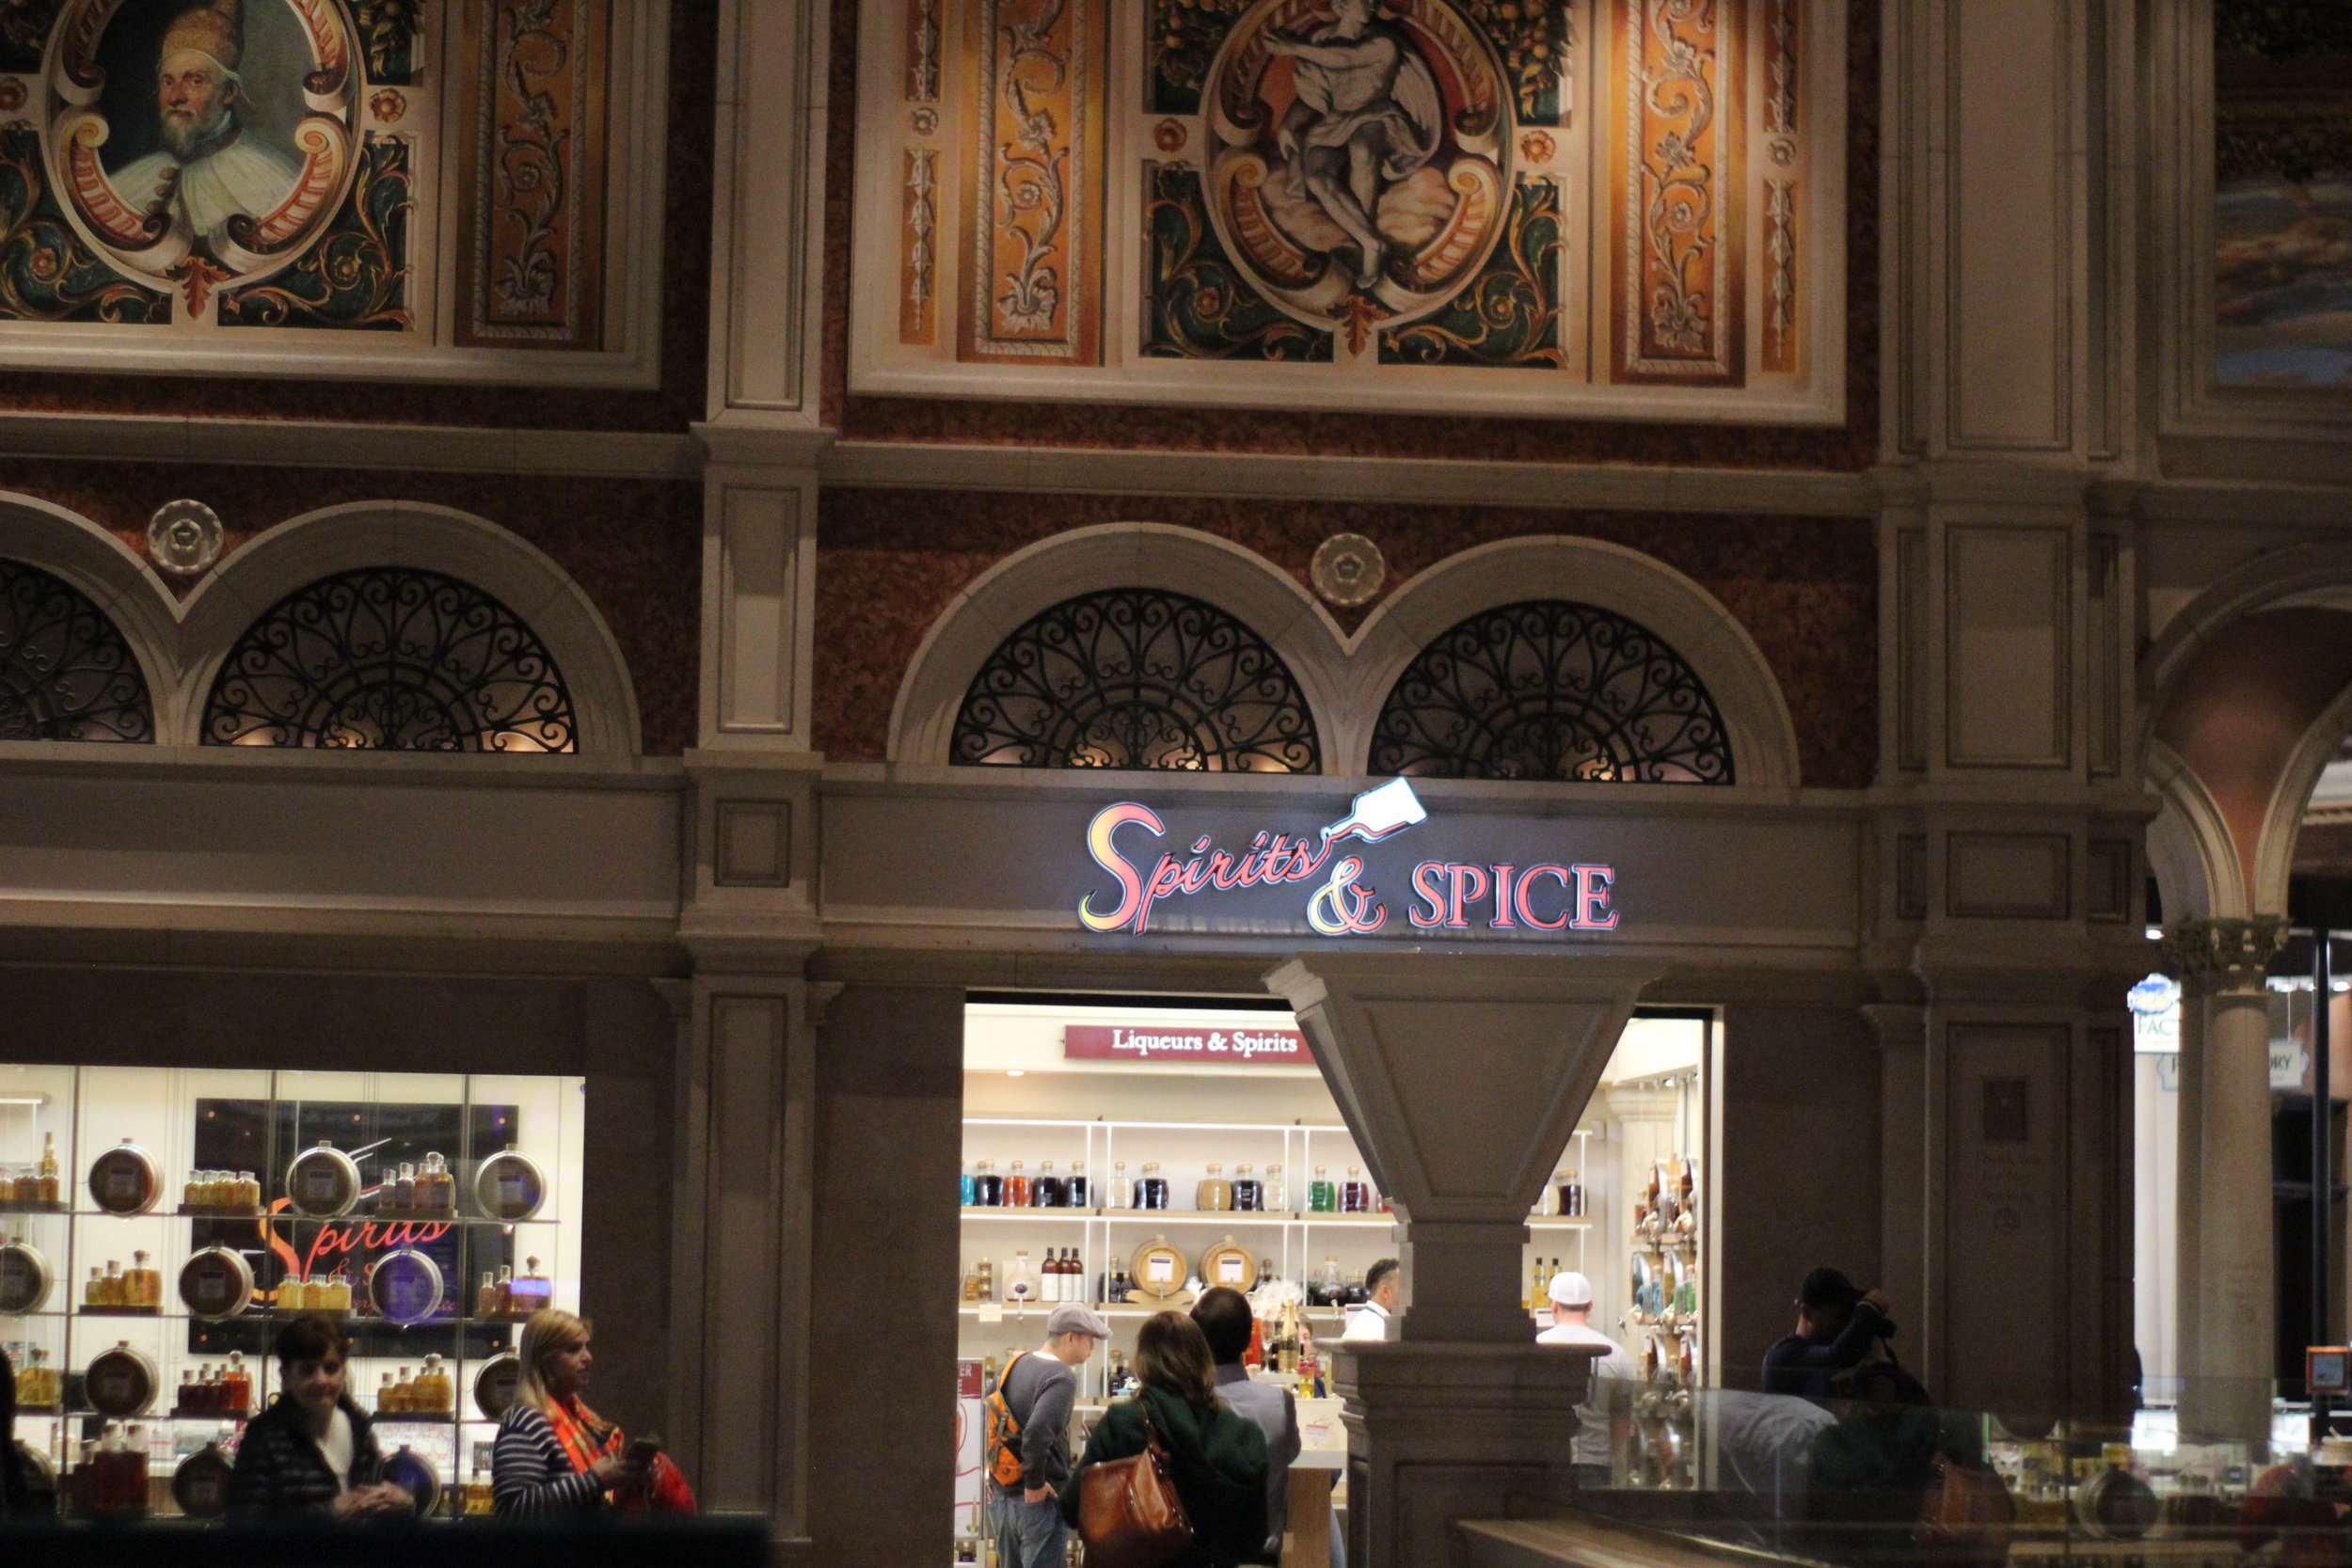 Spirits & Spice at the Venetian Grand Canal Shoppes, 3377 S. Las Vegas Blvd, located between TAO Bistro and It's Sugar.